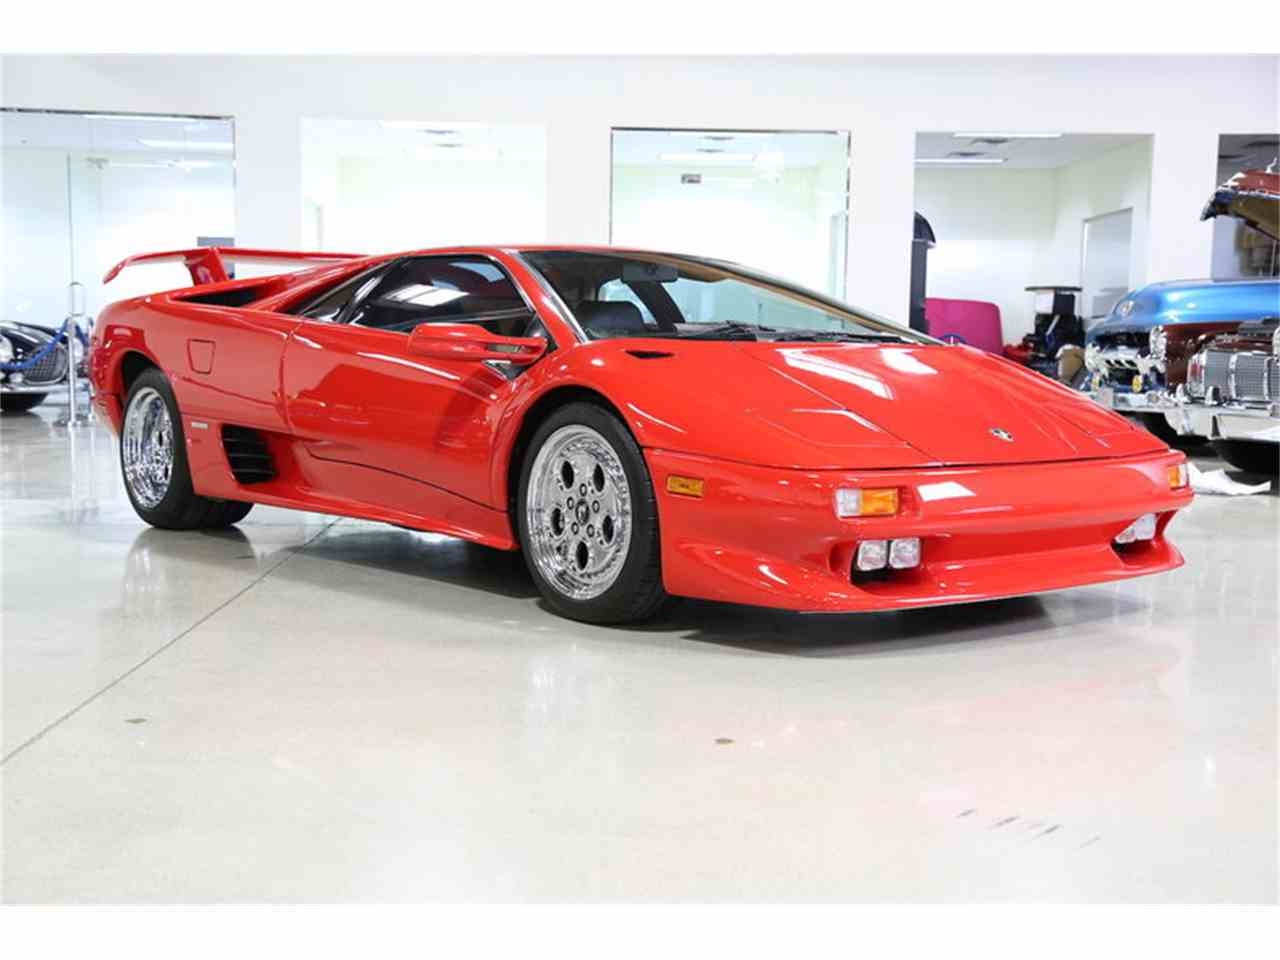 Large Picture of '96 Lamborghini Diablo located in California - $199,900.00 - HB3D